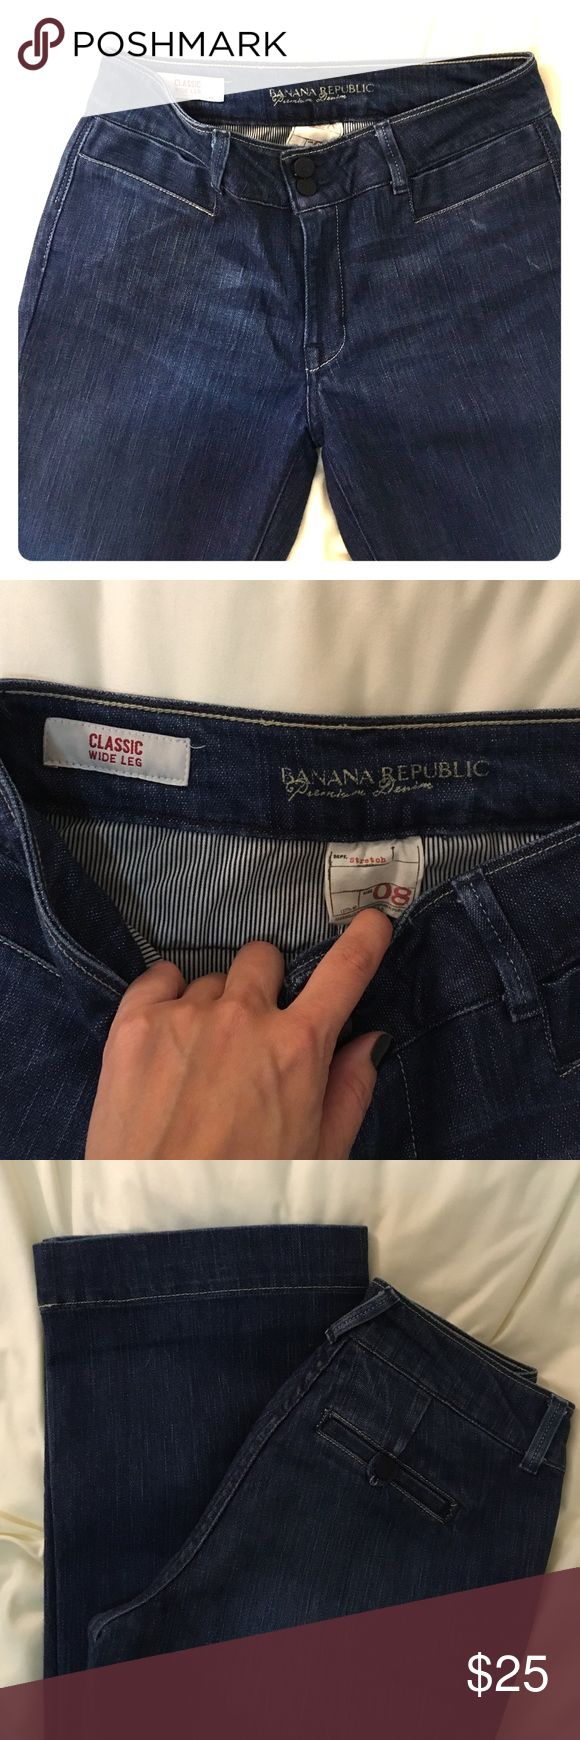 """Banana Republic """"Classic"""" Blue Jeans Great condition! Size 8, but more of a 6 with a slight stretch. Wide legged, dark blue jenas. Banana Republic Jeans Flare & Wide Leg"""